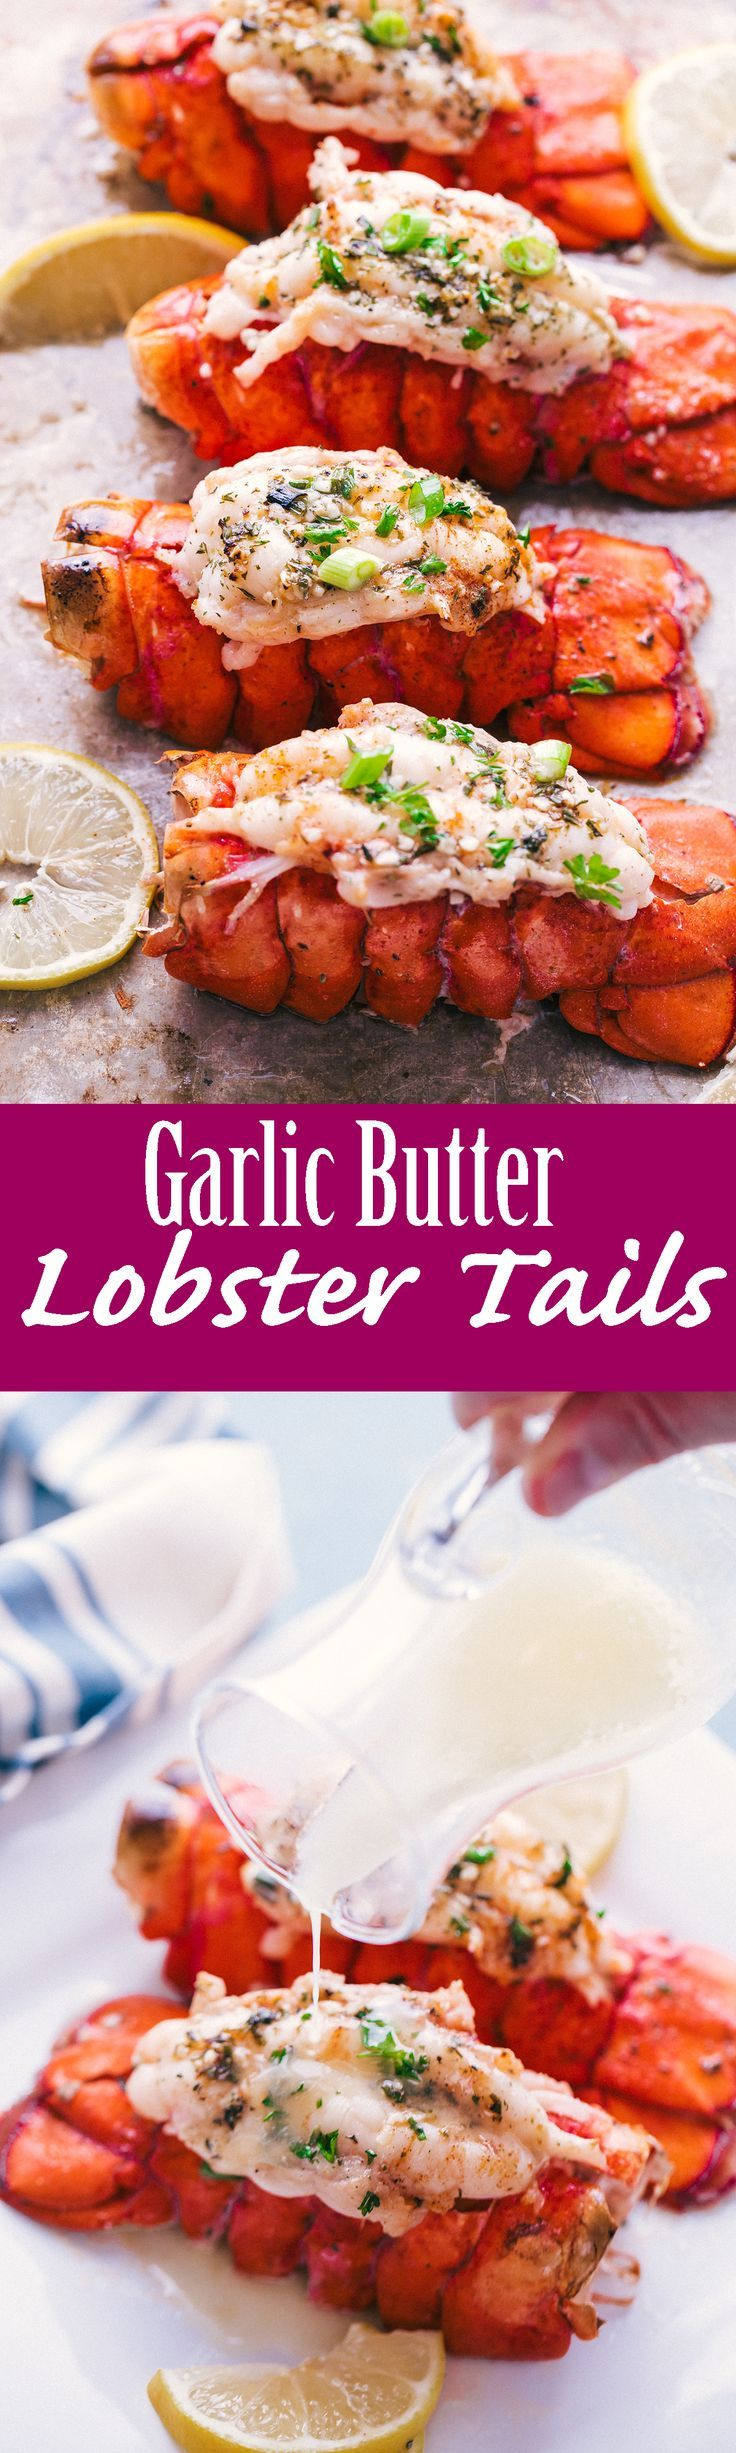 Garlic Butter Broiled Lobster Tails | The Food Cafe